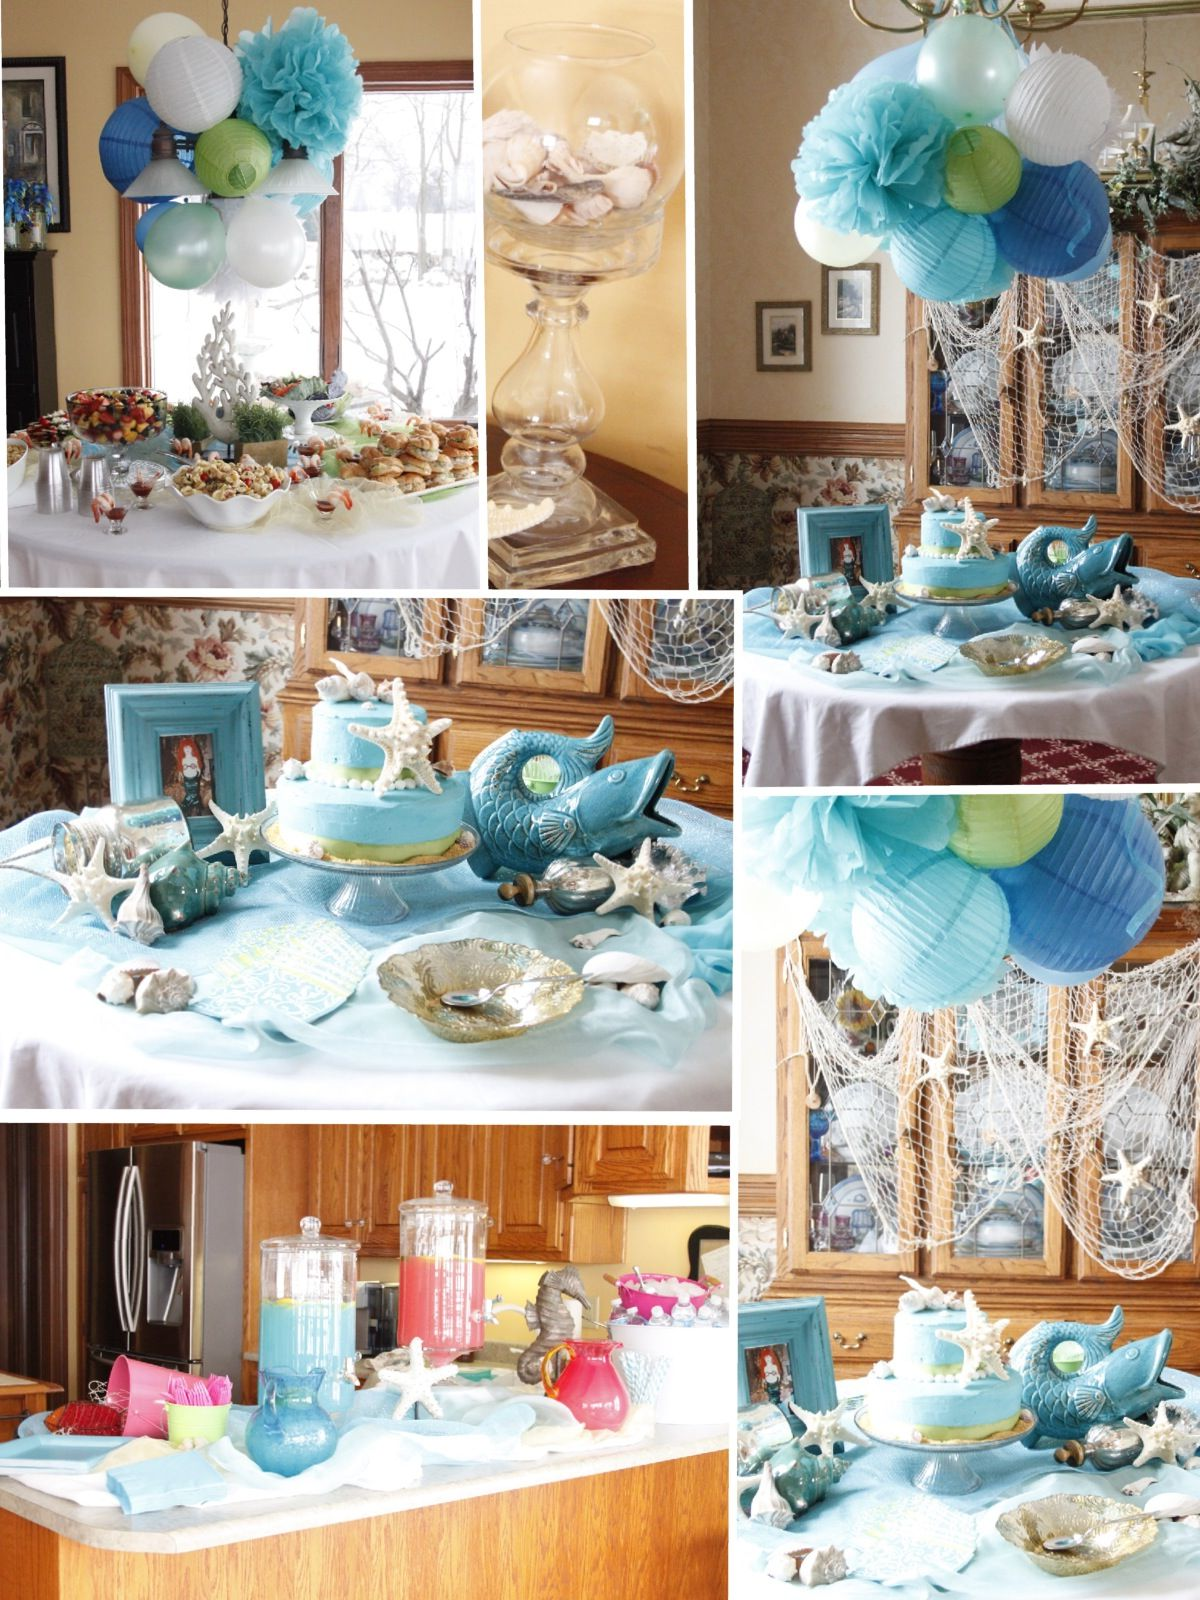 Beach Themed Party Decorations blue serving table theme decor ocean themed party decorations